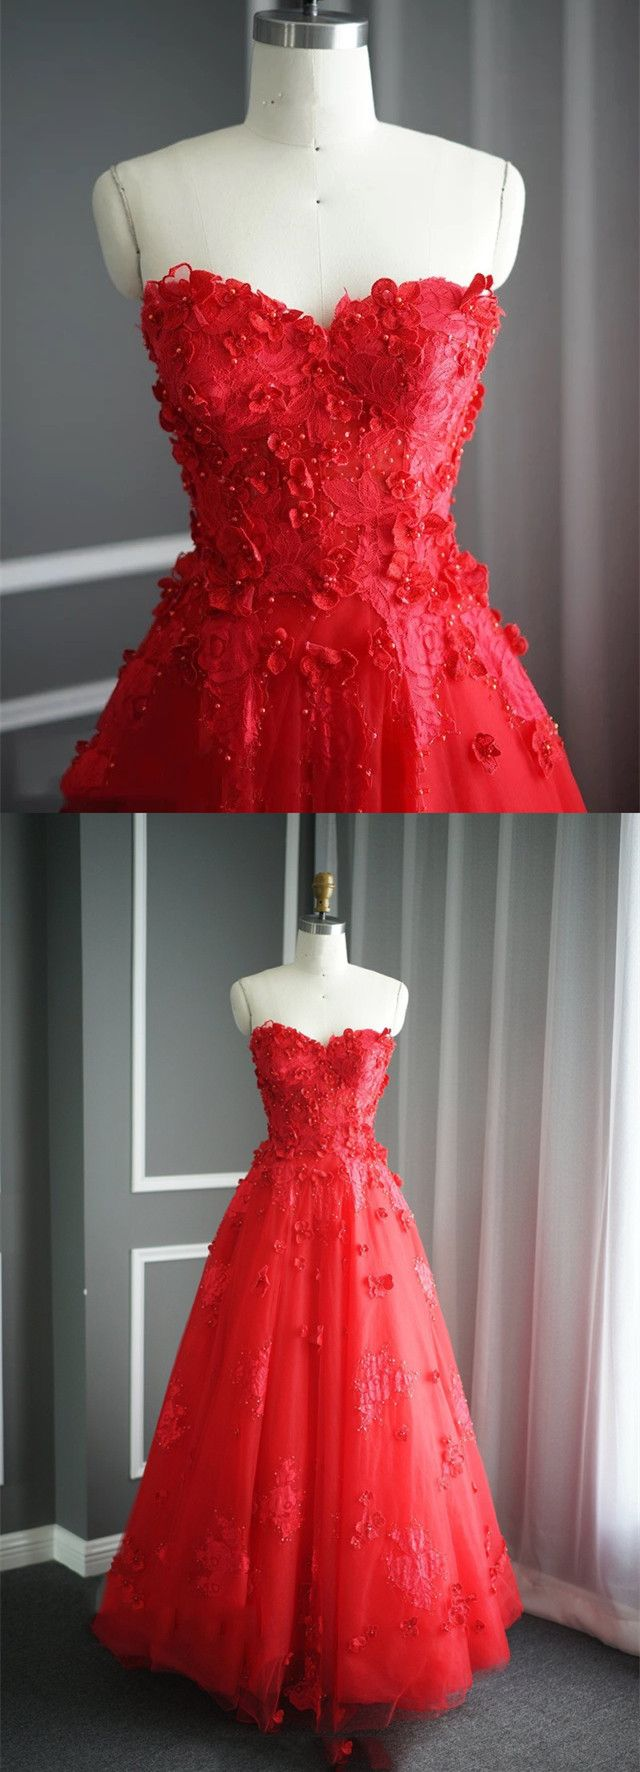 A Line Floral Lace Beaded Sweetheart Tulle Evening Gowns ,Elegant Long Prom Dress,Red Bridesmaid Dresses For Wedding Party